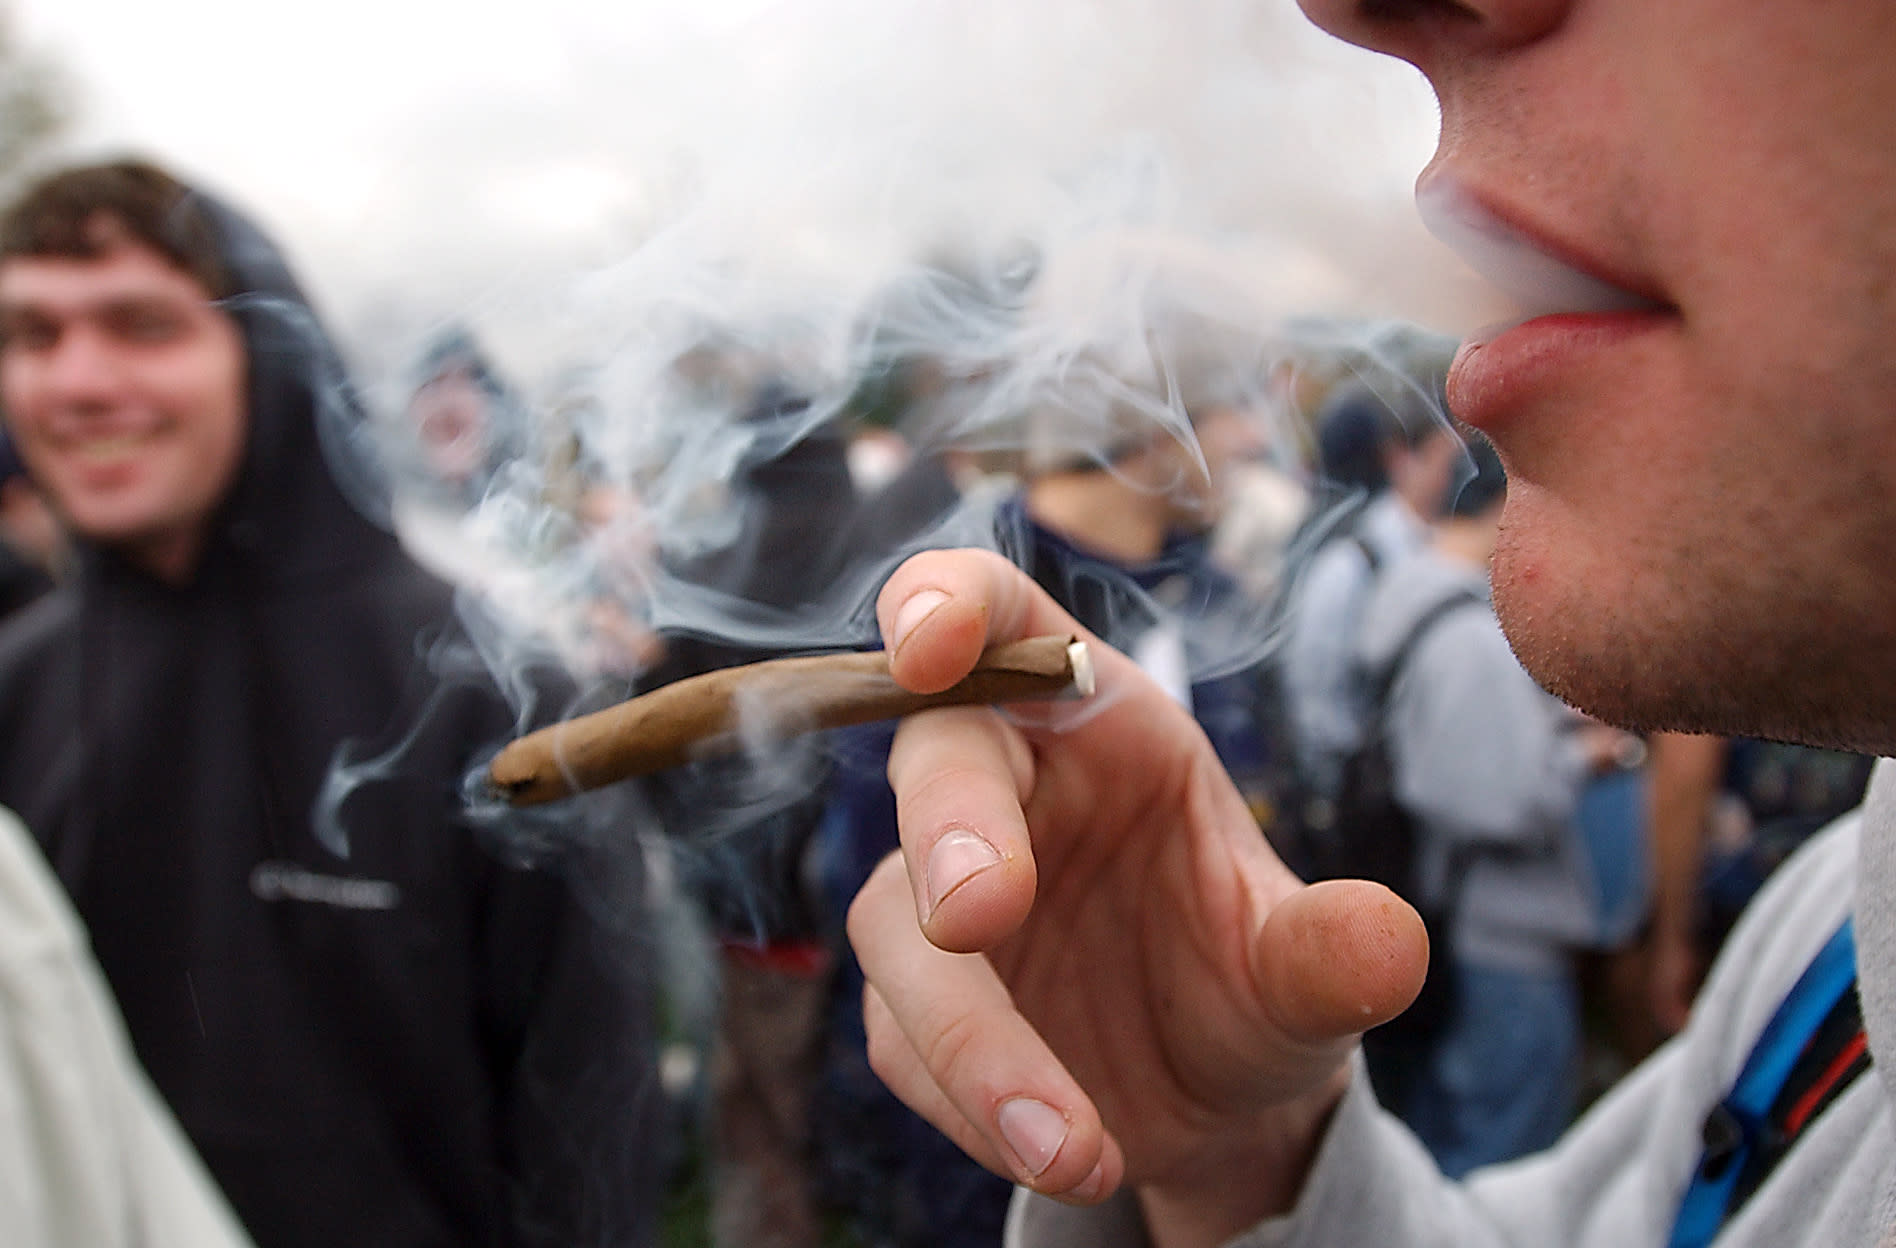 """FILE - In an April 20, 2005 file photo, a University of Colorado freshman, who did not want to be identified, joins a crowd smoking marijuana during a """"420"""" gathering at Farrand Field at the University of Colorado in Boulder, Colo. People who started using marijuana persistently before age 18 risk losing some of their IQ by the time they're 38, a long-running study says. In contrast, even long-term chronic users who started after age 18 showed no such effect, suggesting the drug holds some particular toxicity for the developing brain. (AP Photo/Longmont Daily Times-Call, Richard M. Hackett, File) MANDATORY CREDIT, MAGS OUT, NO SALES"""